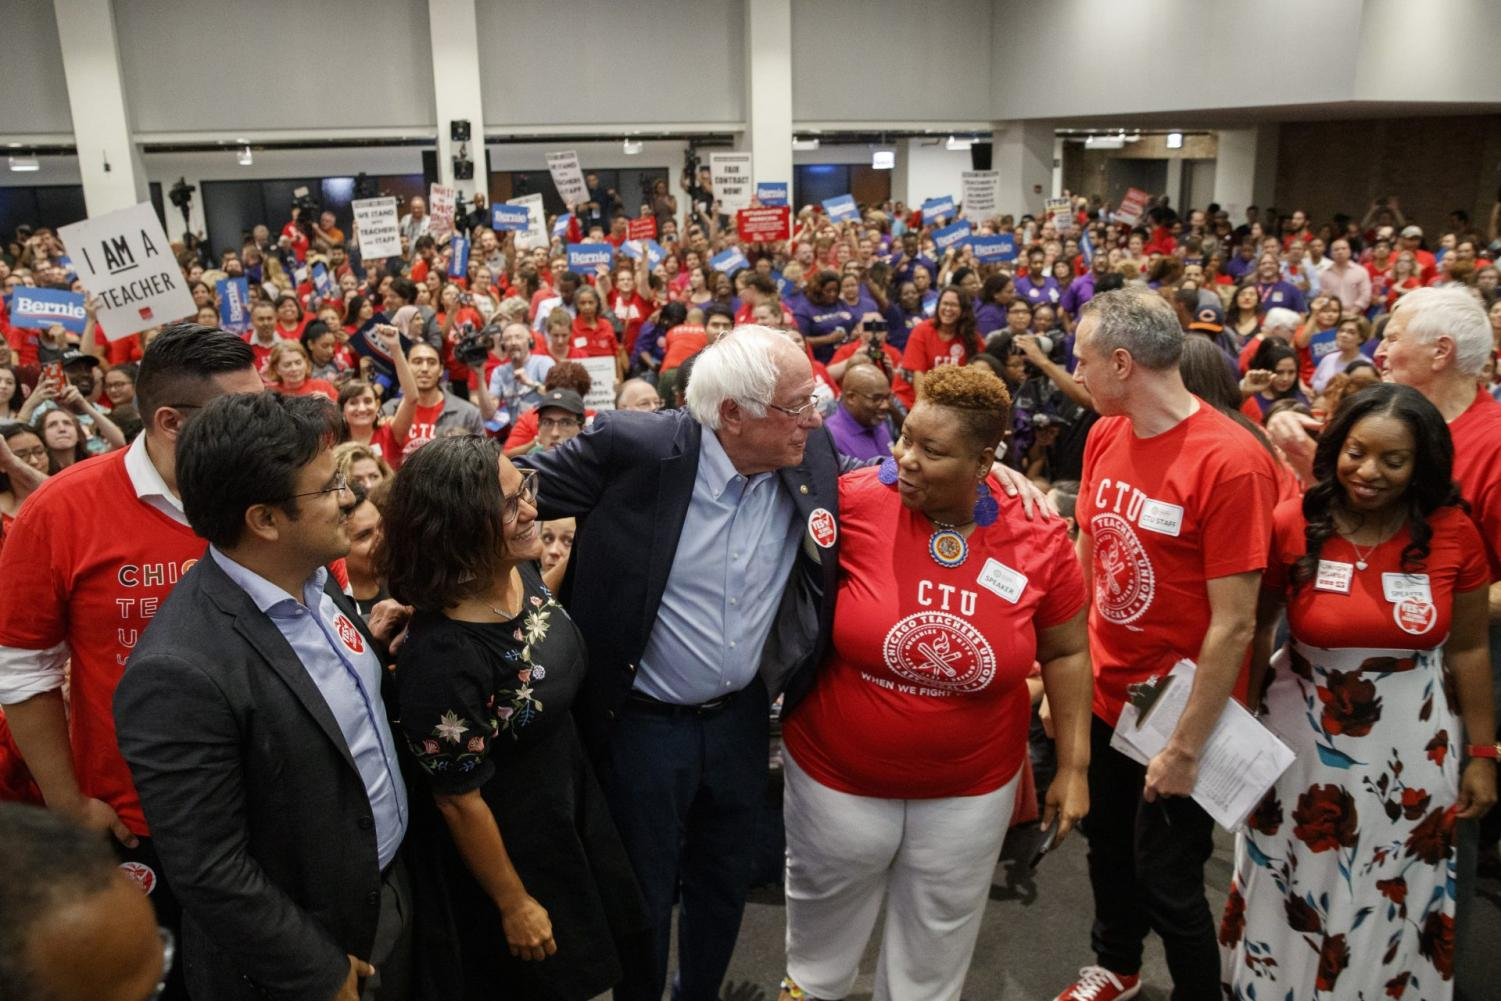 Supporters cheer as presidential candidate U.S. Sen. Bernie Sanders, I-Vt., speaks at a rally at the Chicago Teachers Union headquarters, Tuesday, Sept. 24, 2019, in Chicago.